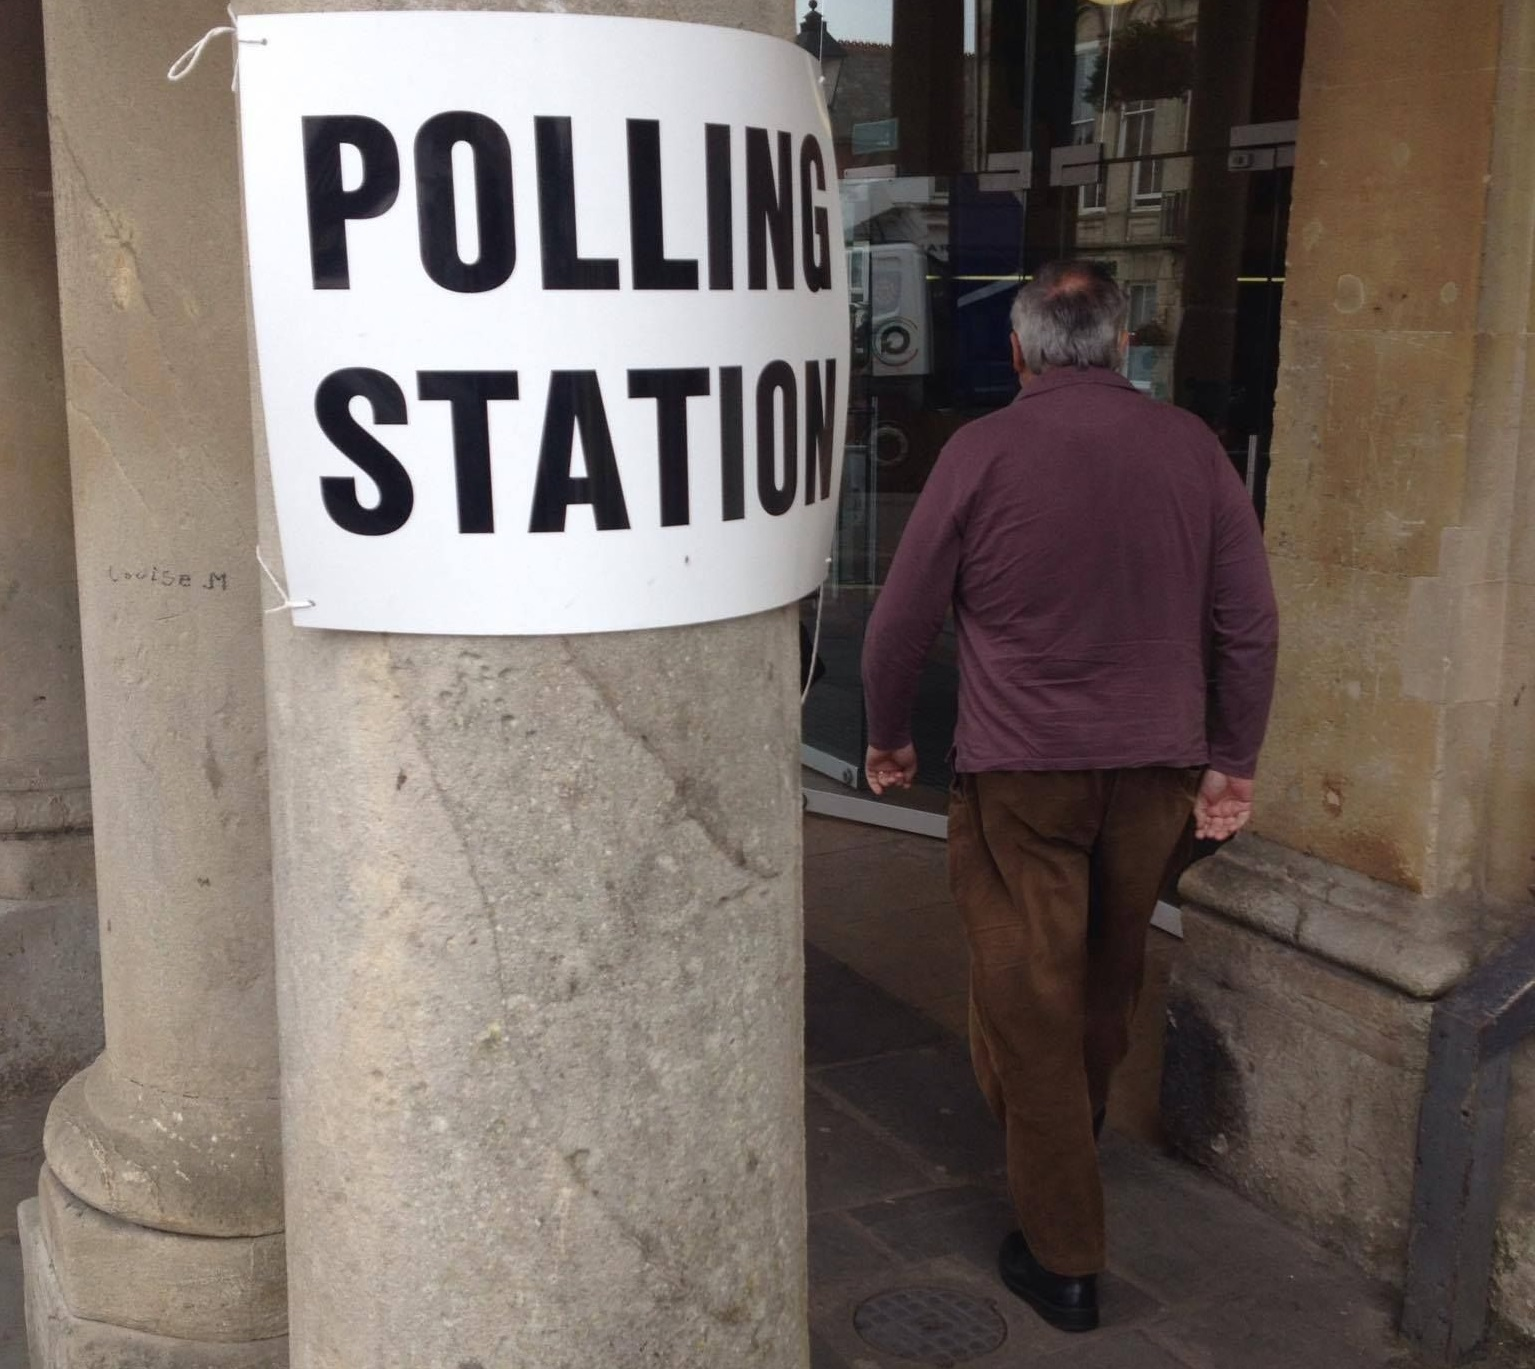 A polling station in South Somerset